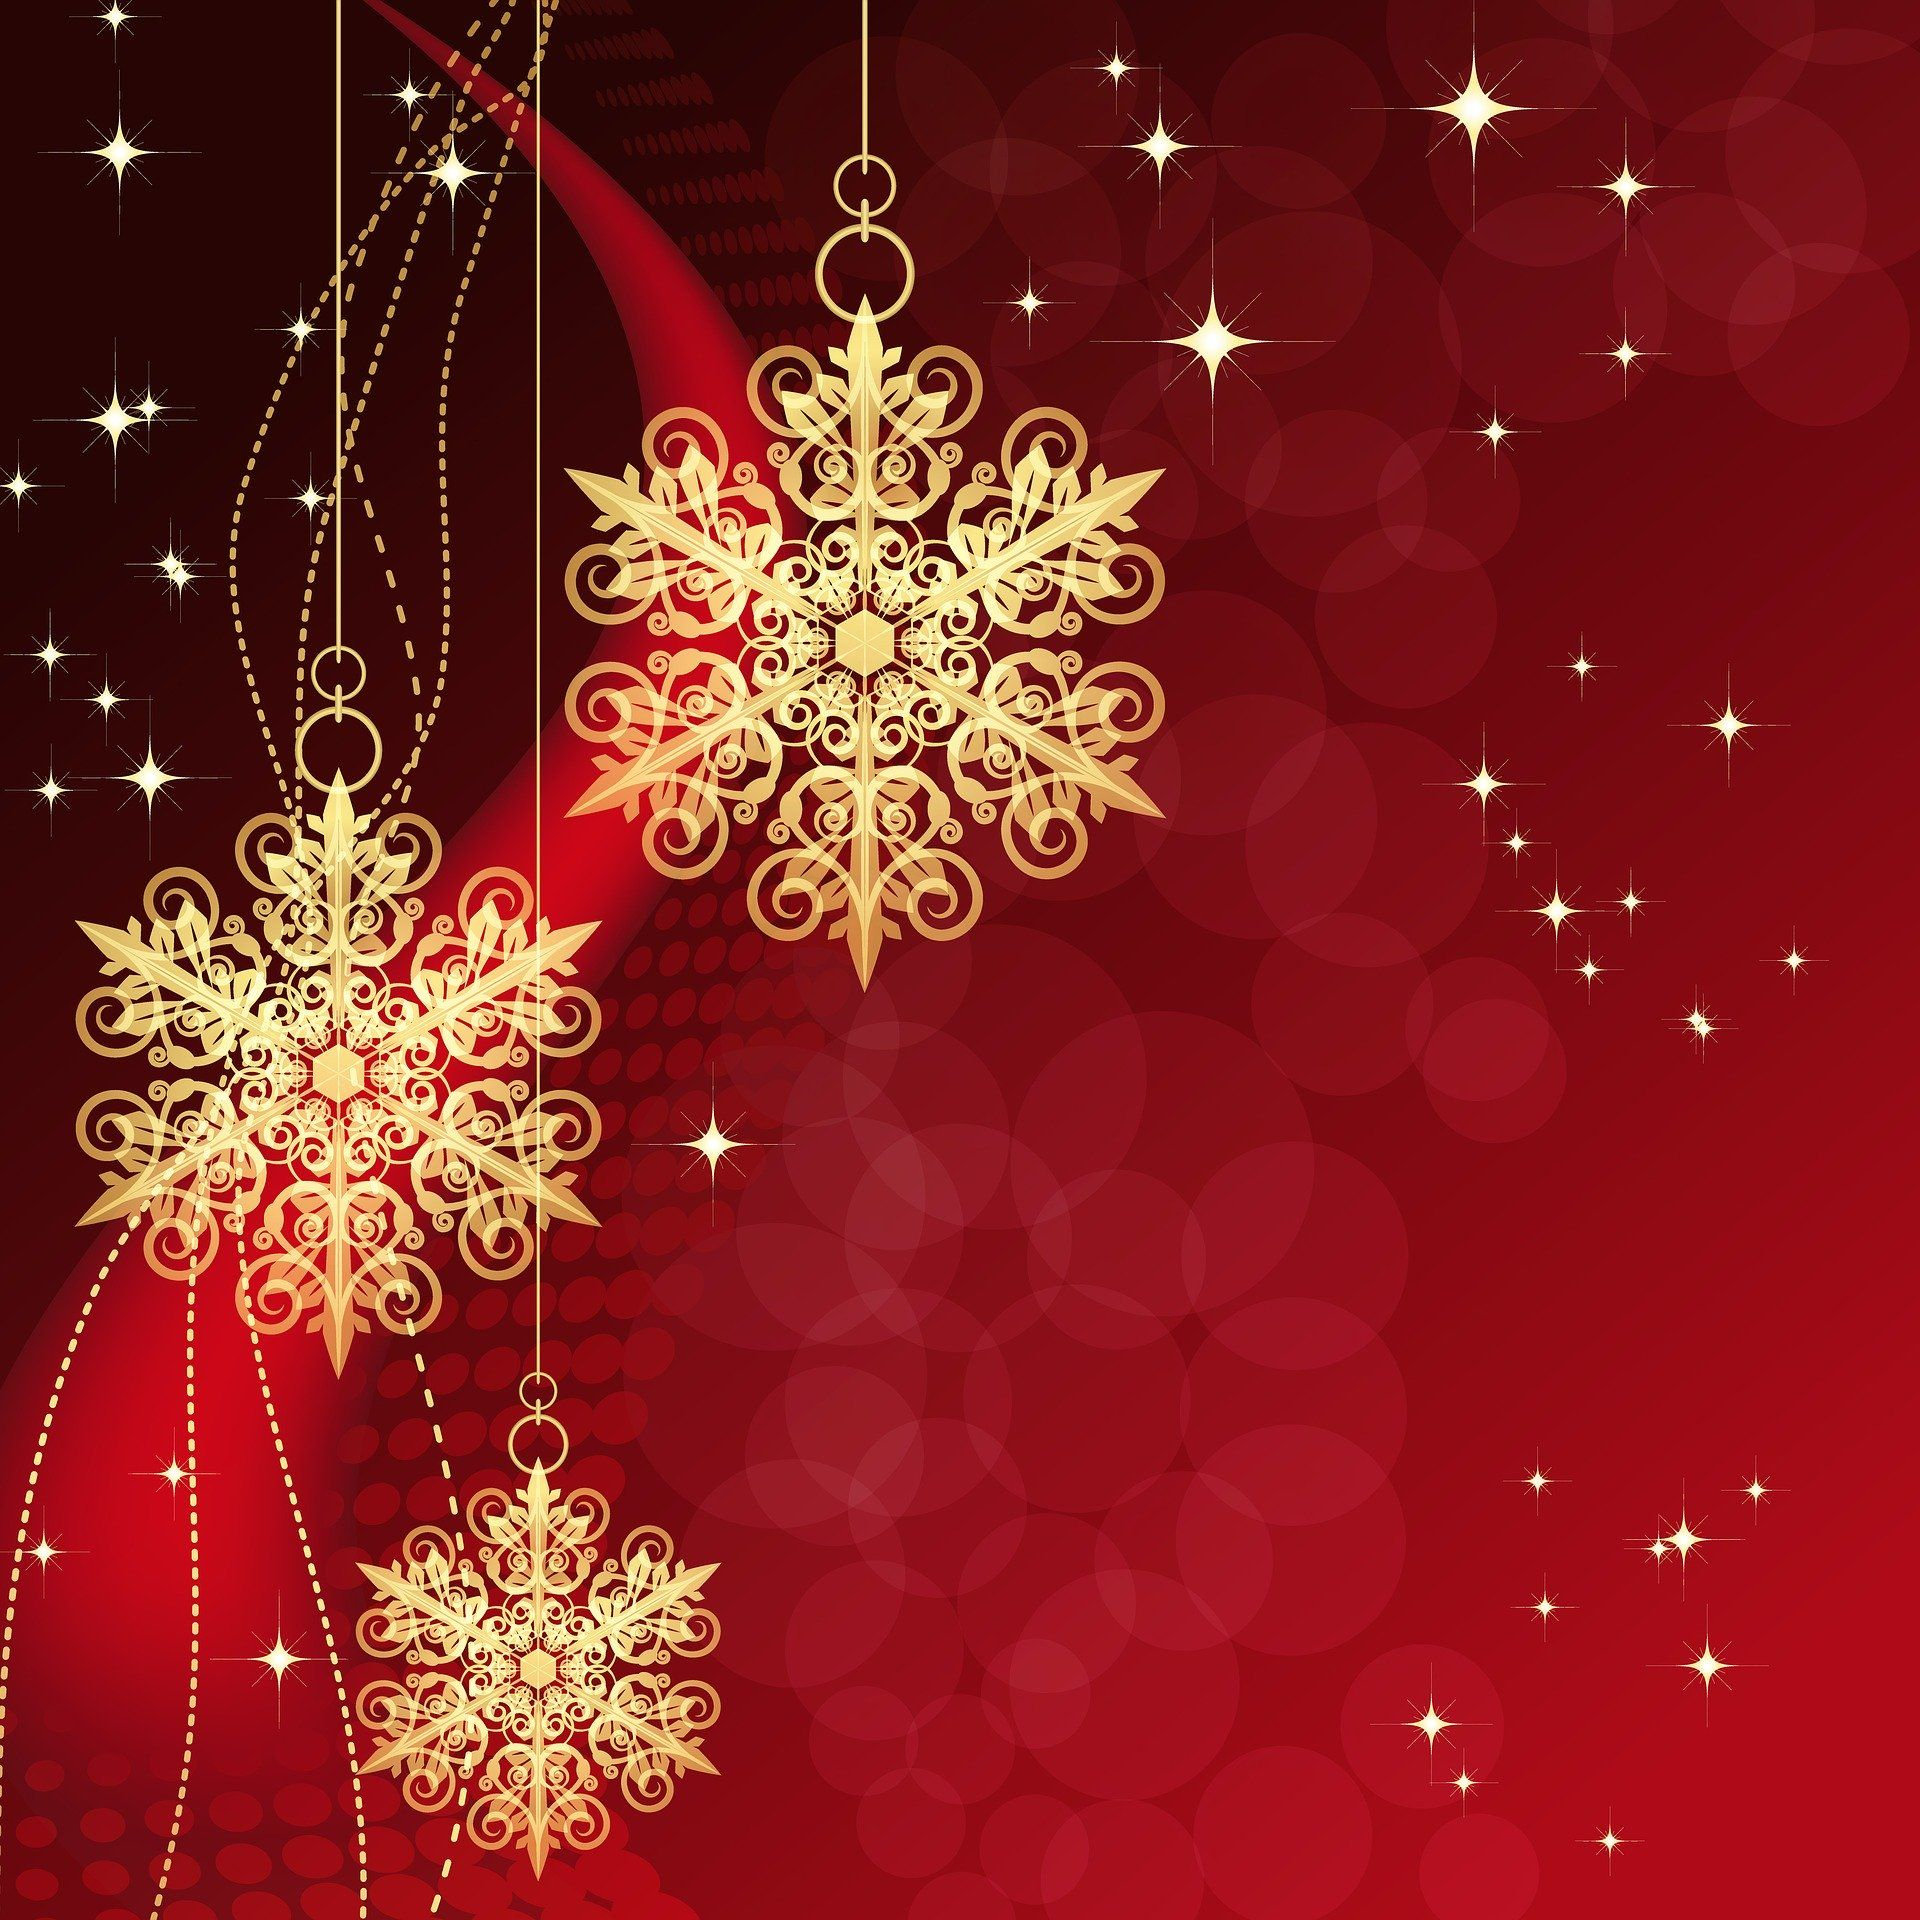 christmas-background-3762099_1920